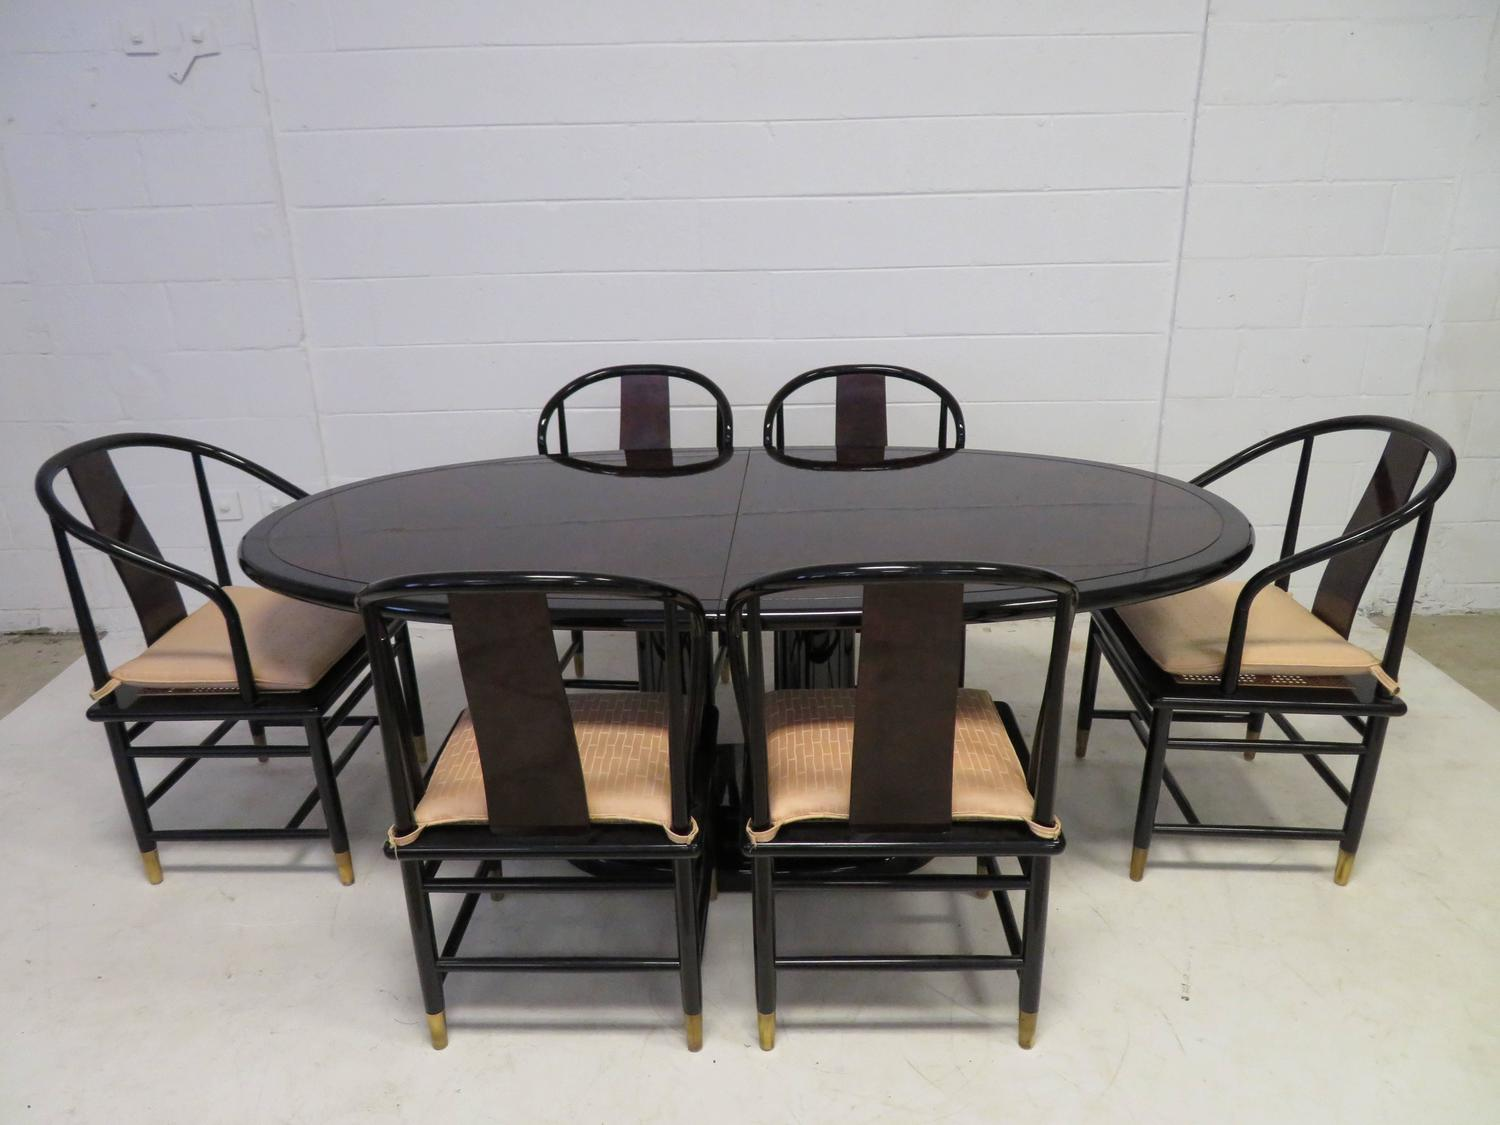 henredon asian dining chairs tantra chair dimensions width fabulous set of six scene three style lacquered